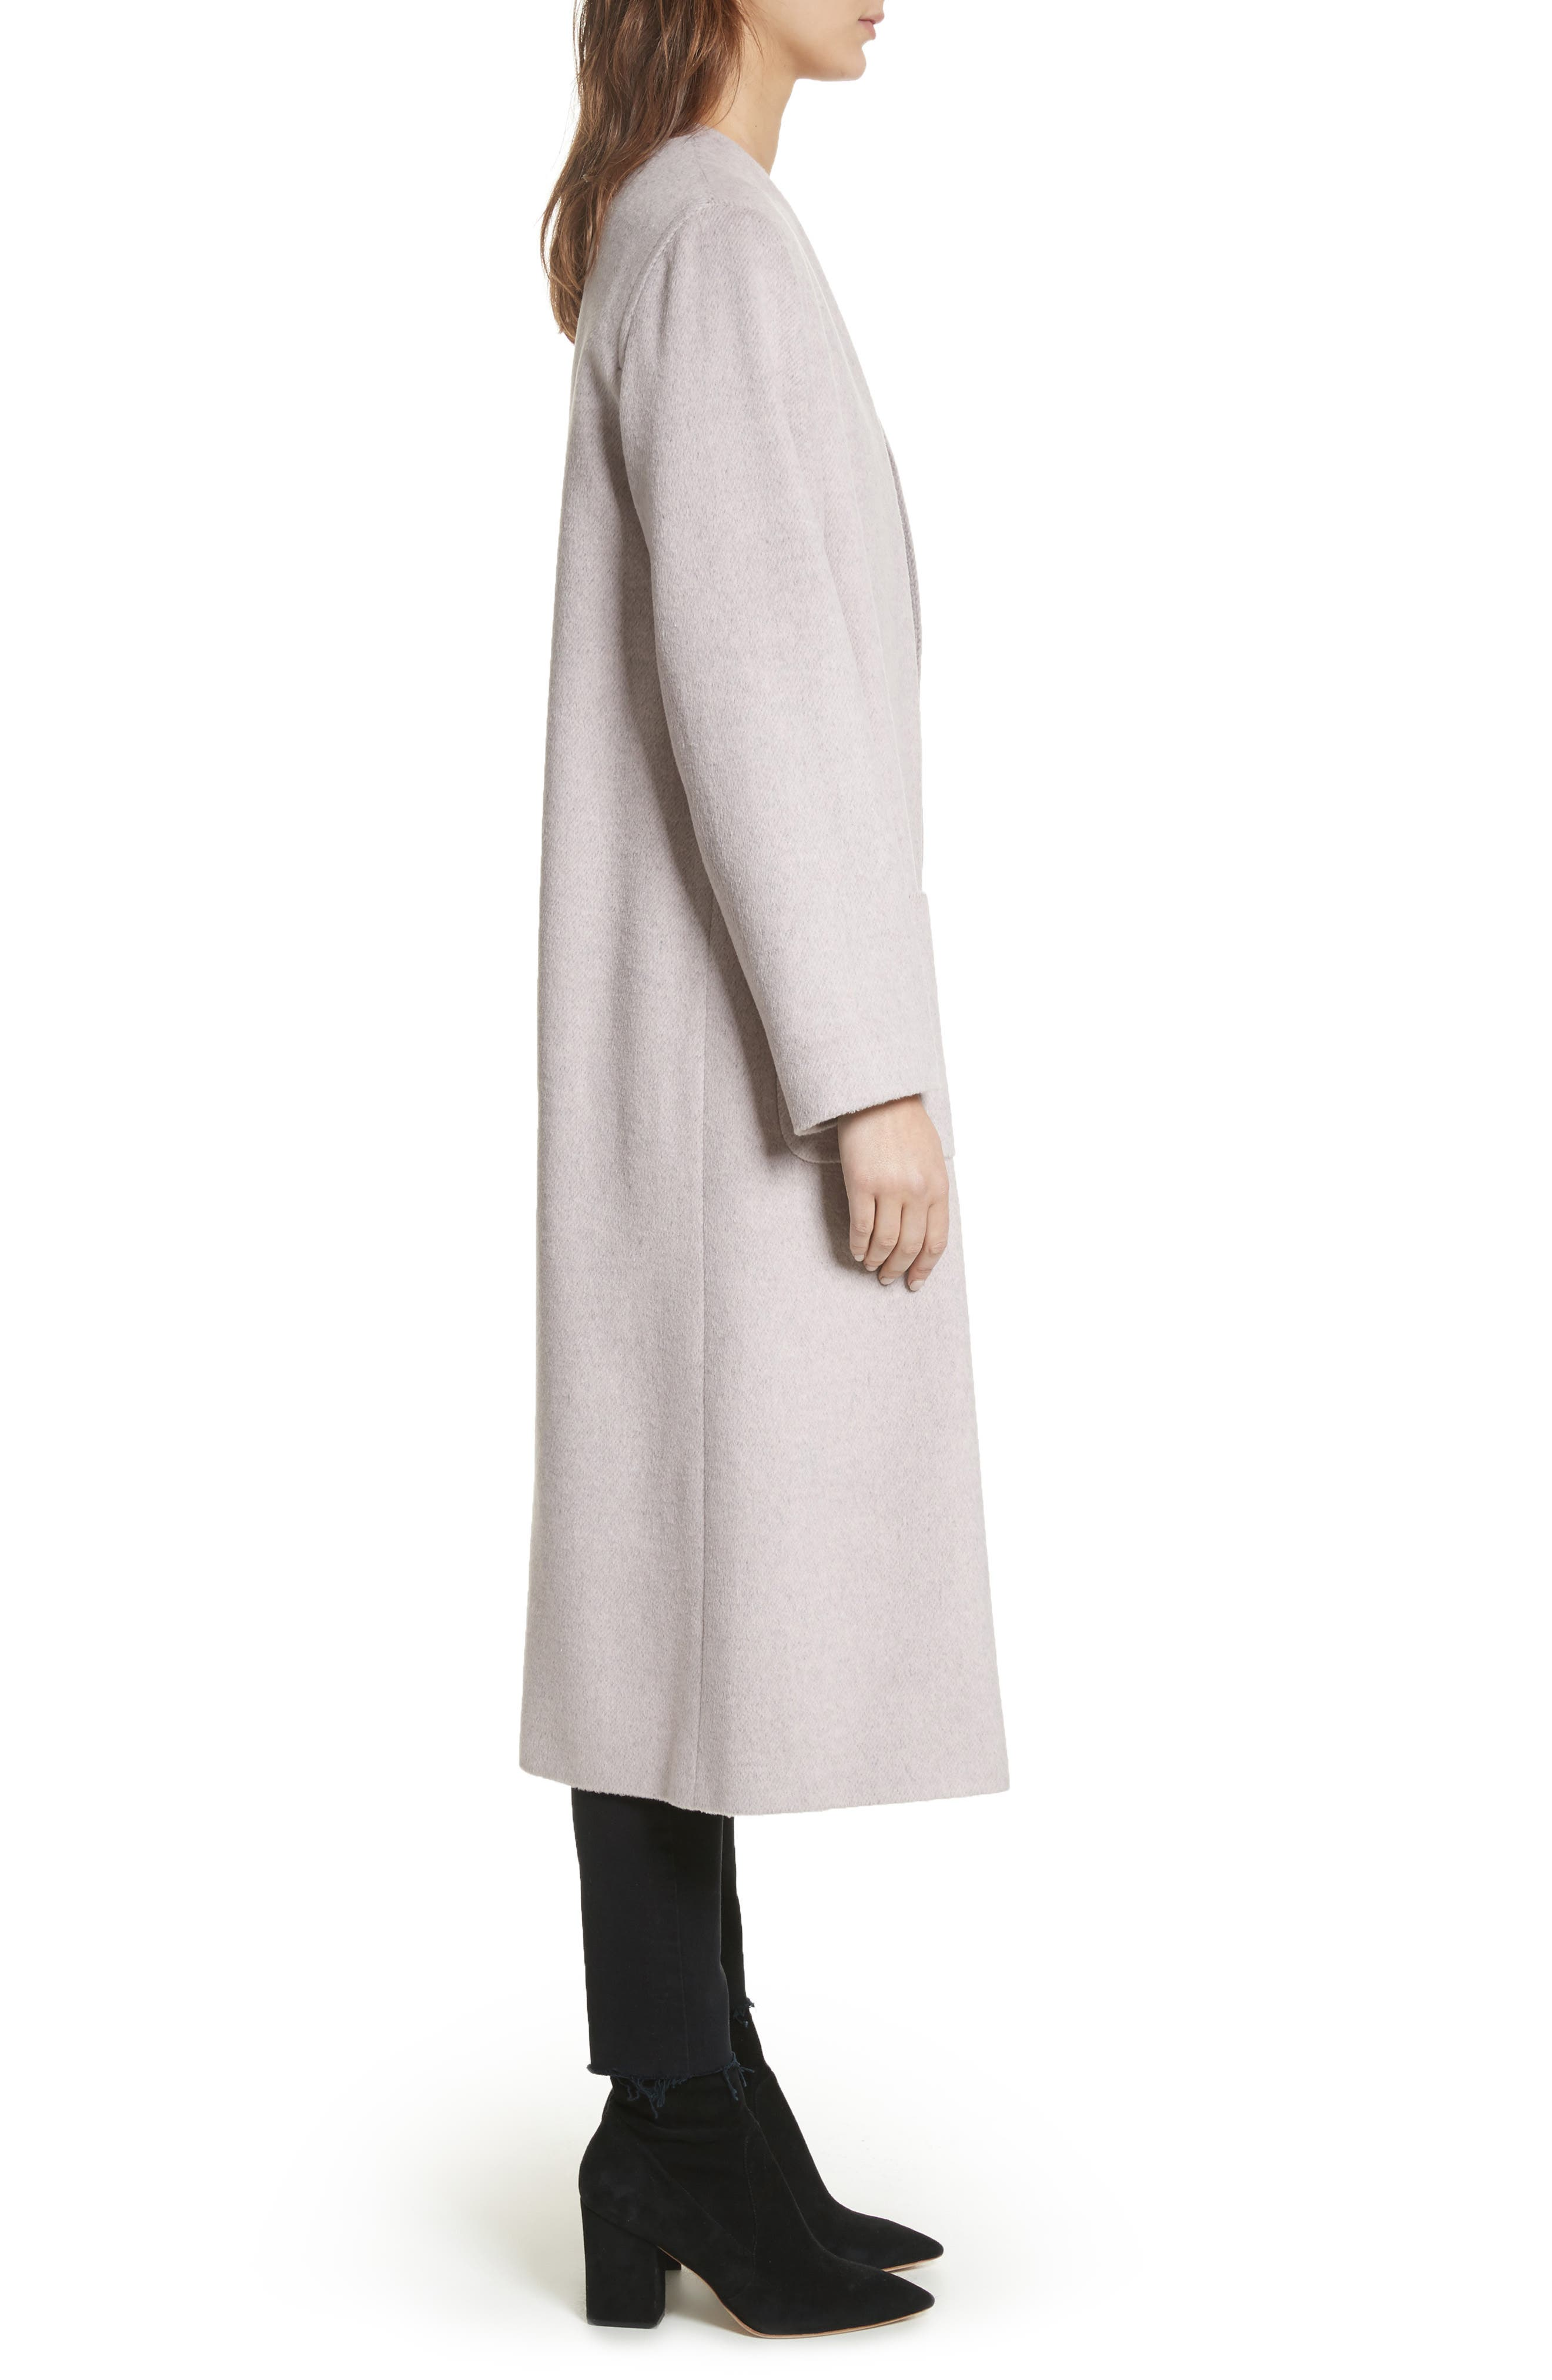 Edge to Edge Coat,                             Alternate thumbnail 3, color,                             Pale Pink